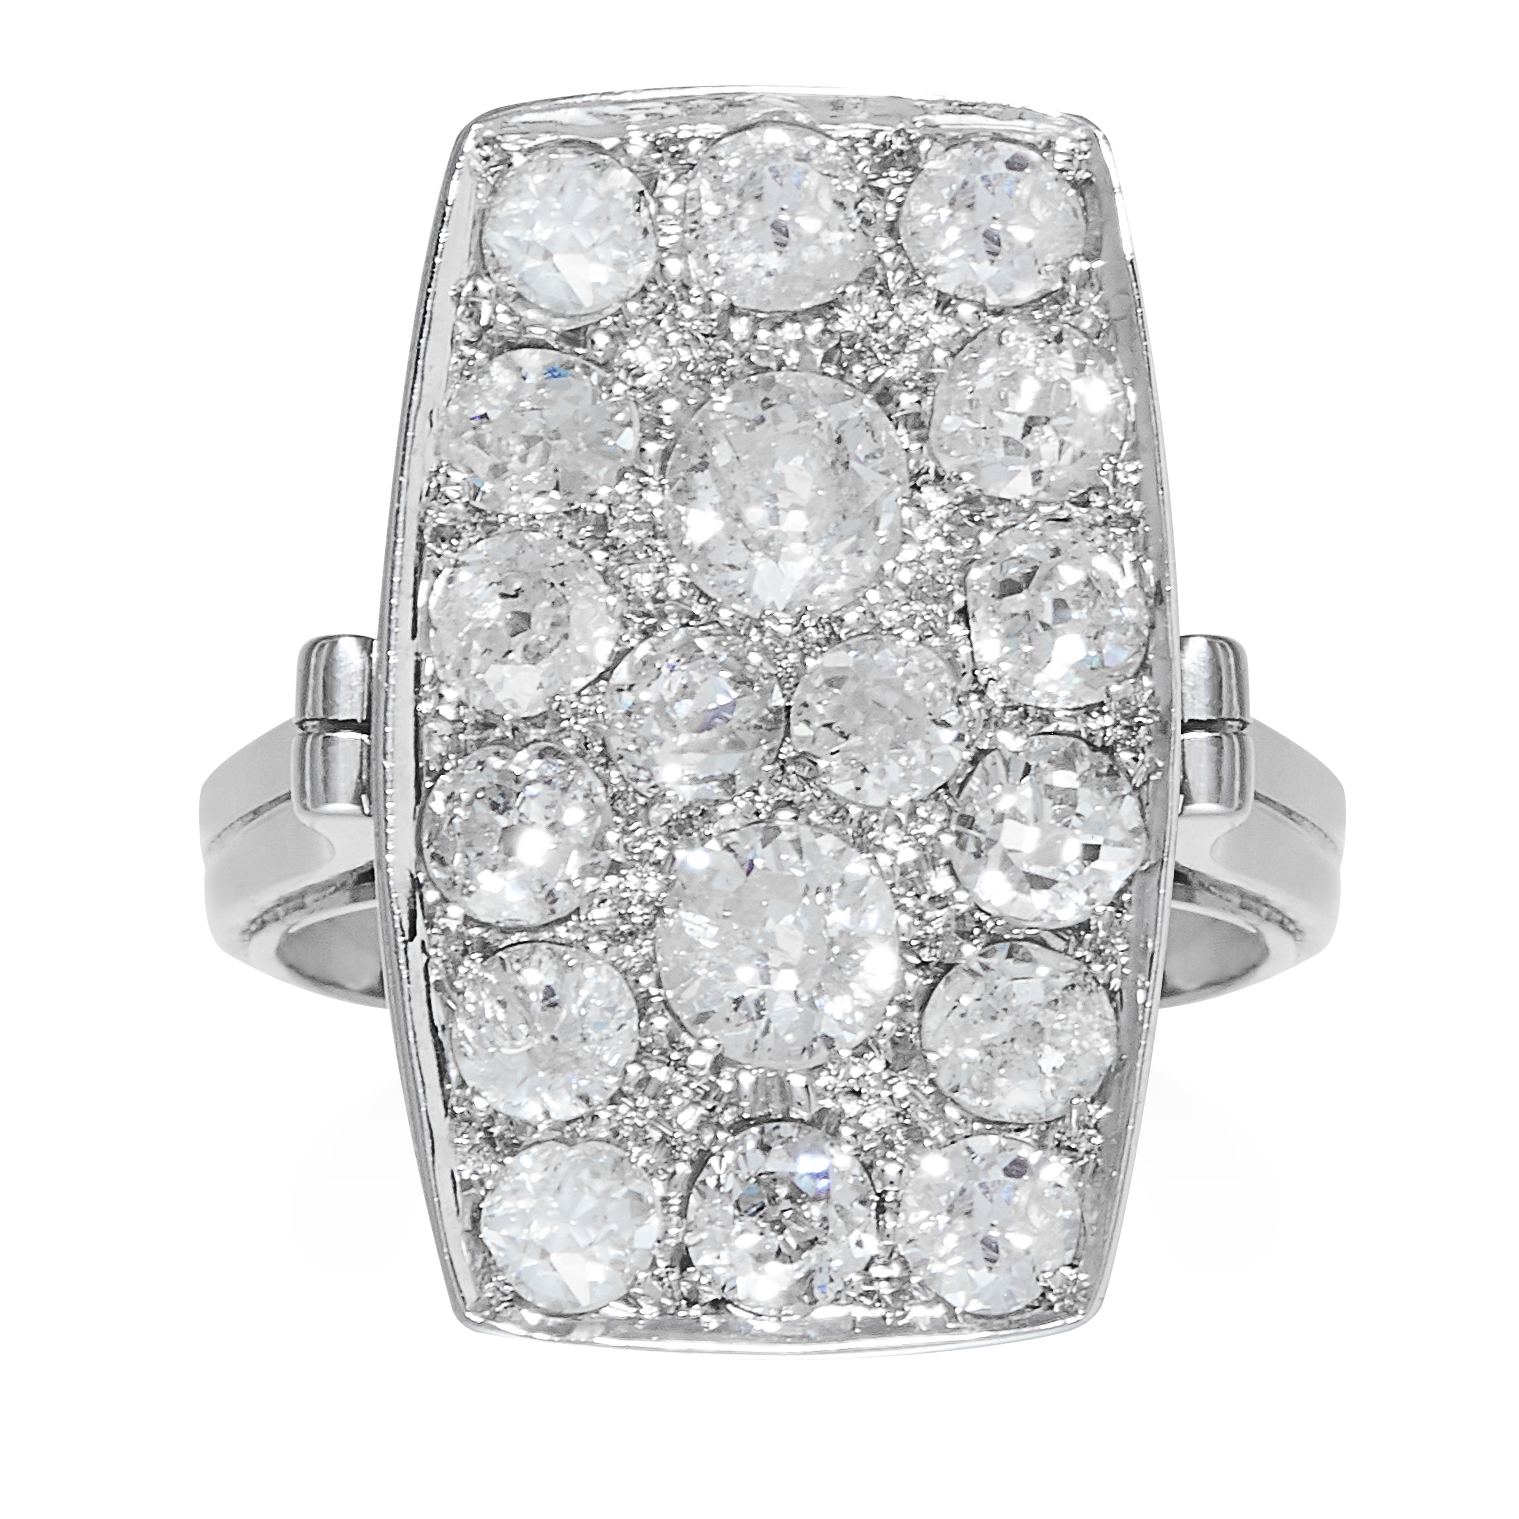 AN ART DECO DIAMOND RING in platinum or white gold, the rectangular face jewelled with old round cut